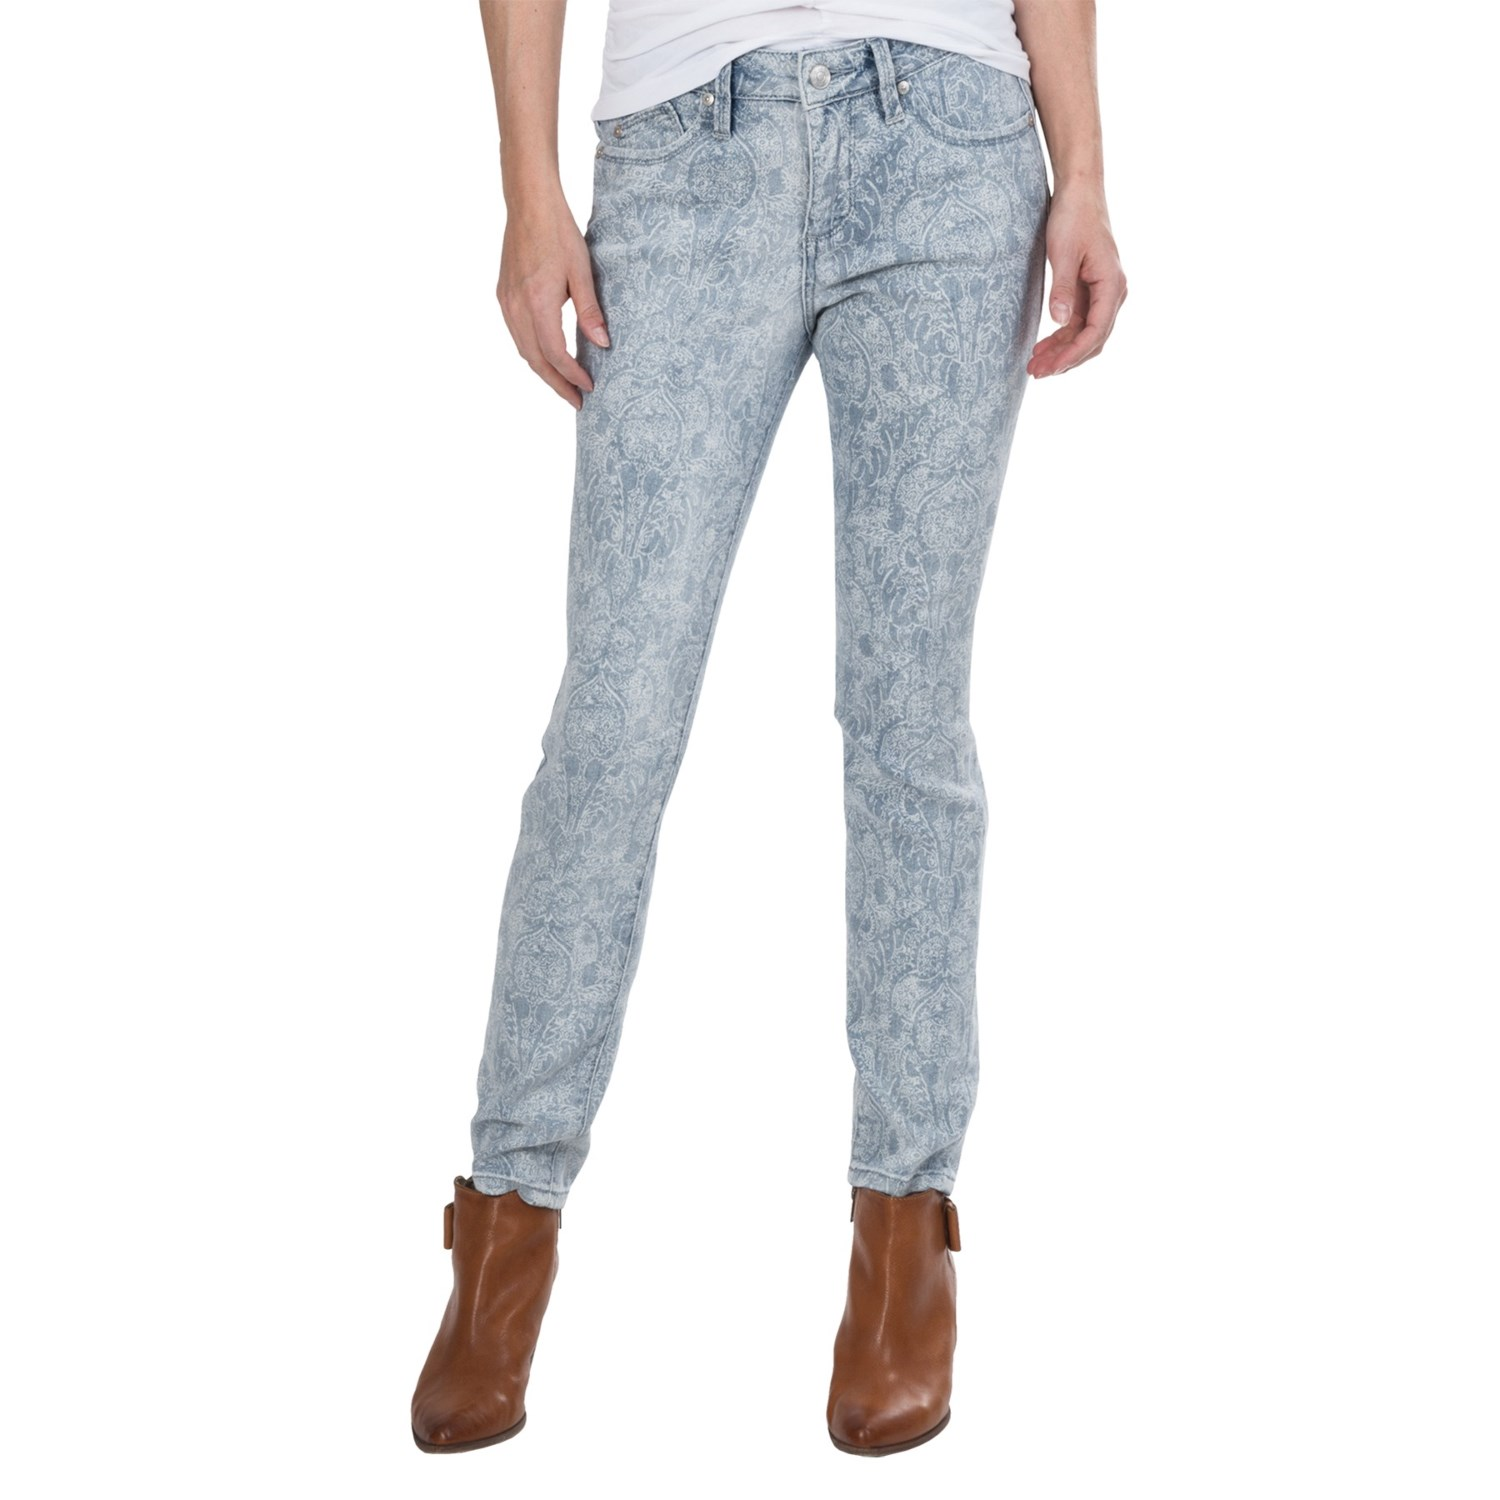 Save 15% Off Any Order At Jag Jeans. Find the latest styles of Jag Jeans today and save 15% off any order when you use coupon code. Offer ends December 31, at Jag Jeans.